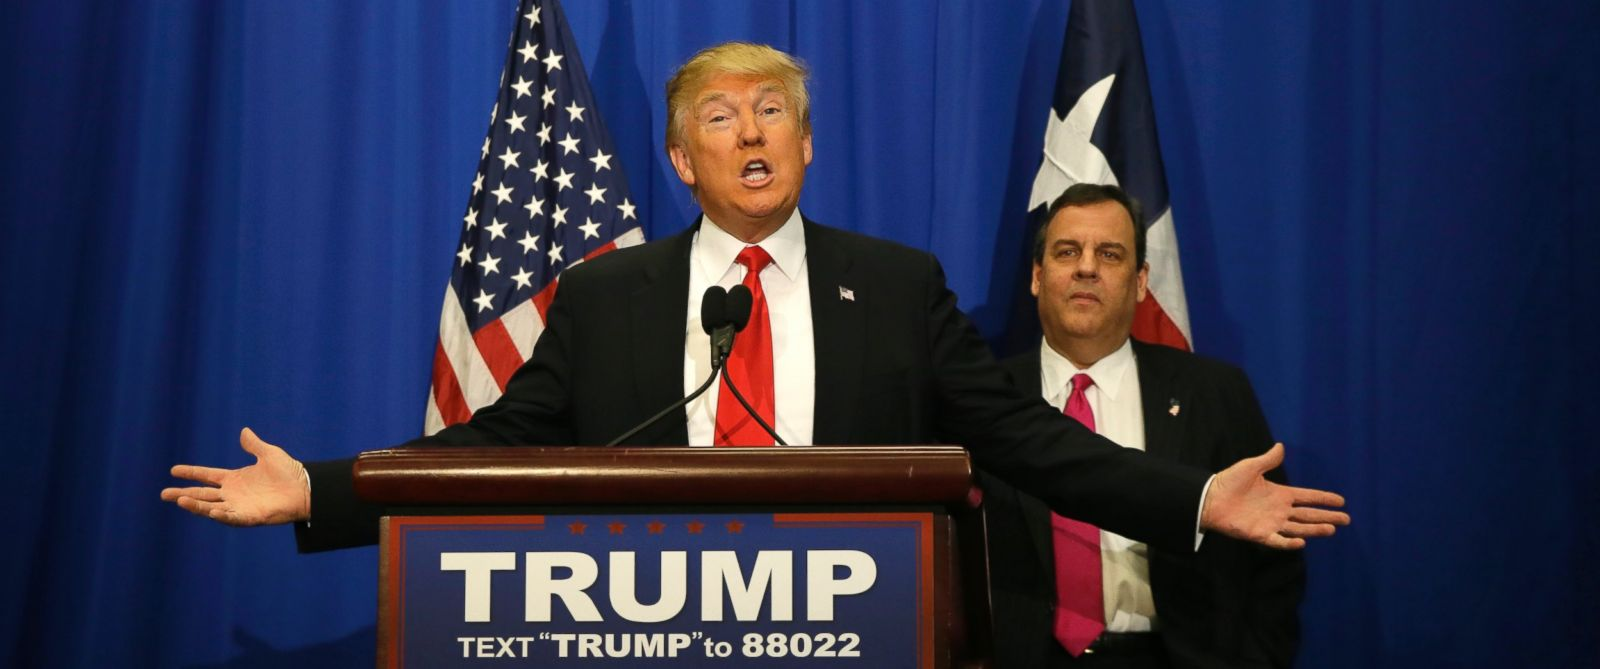 PHOTO: Republican presidential candidate Donald Trump, accompanied by New Jersey Gov. Chris Christie, speaks before a rally in Fort Worth, Texas, Feb. 26, 2016.